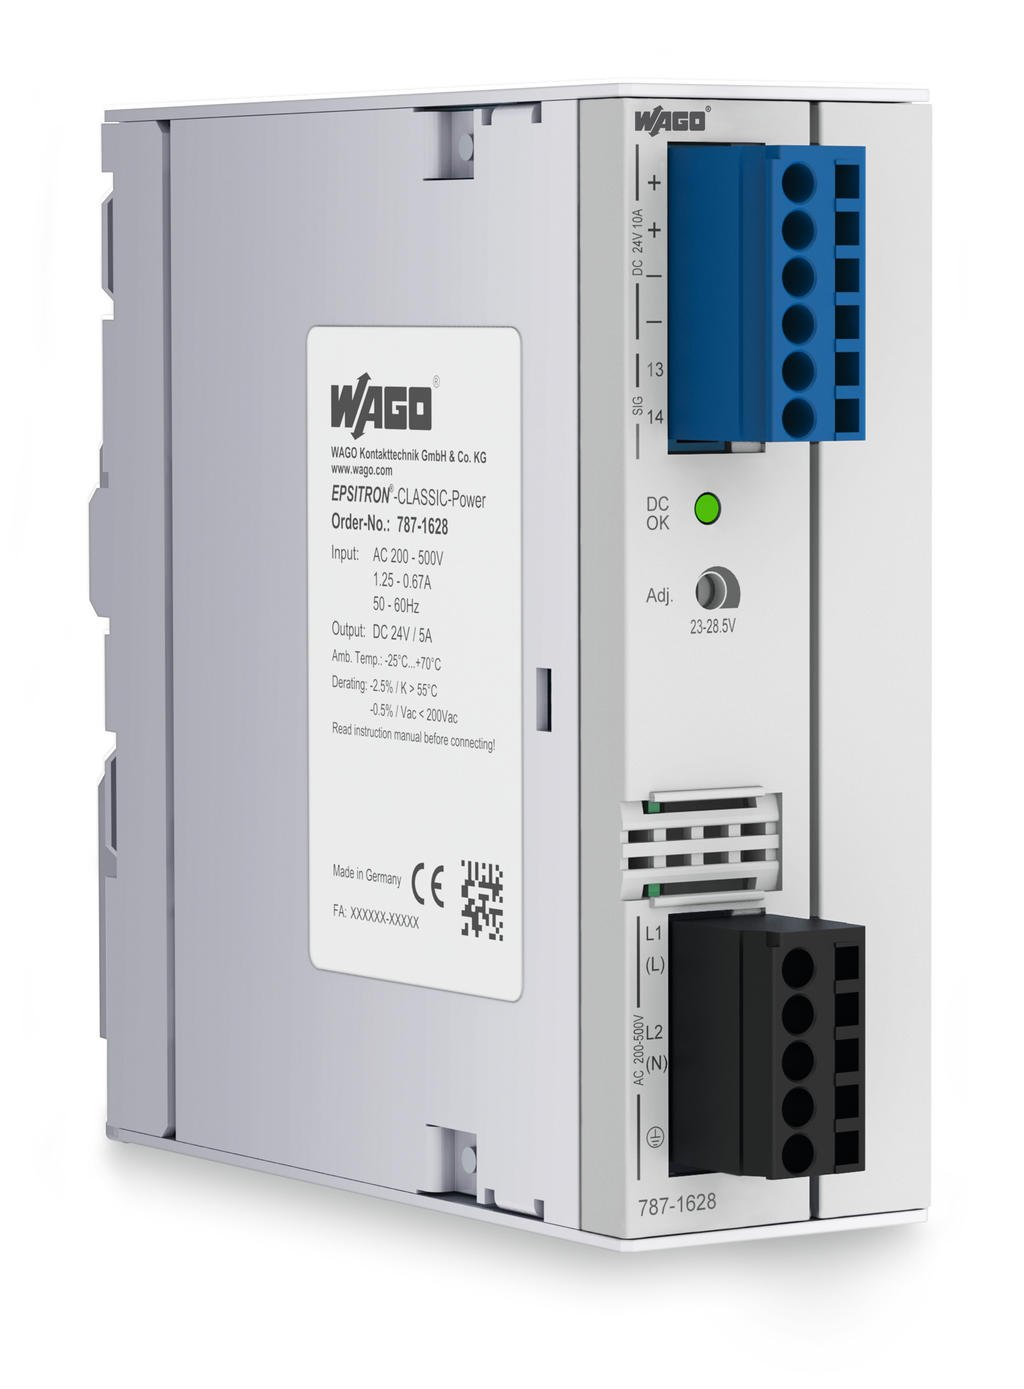 Wago Epsitron Classic Power Supply 787 1628 Solutions 5v System Protected From 24v Supplies 2 Phase Output Voltage 24 Vdc 5 A Topboost